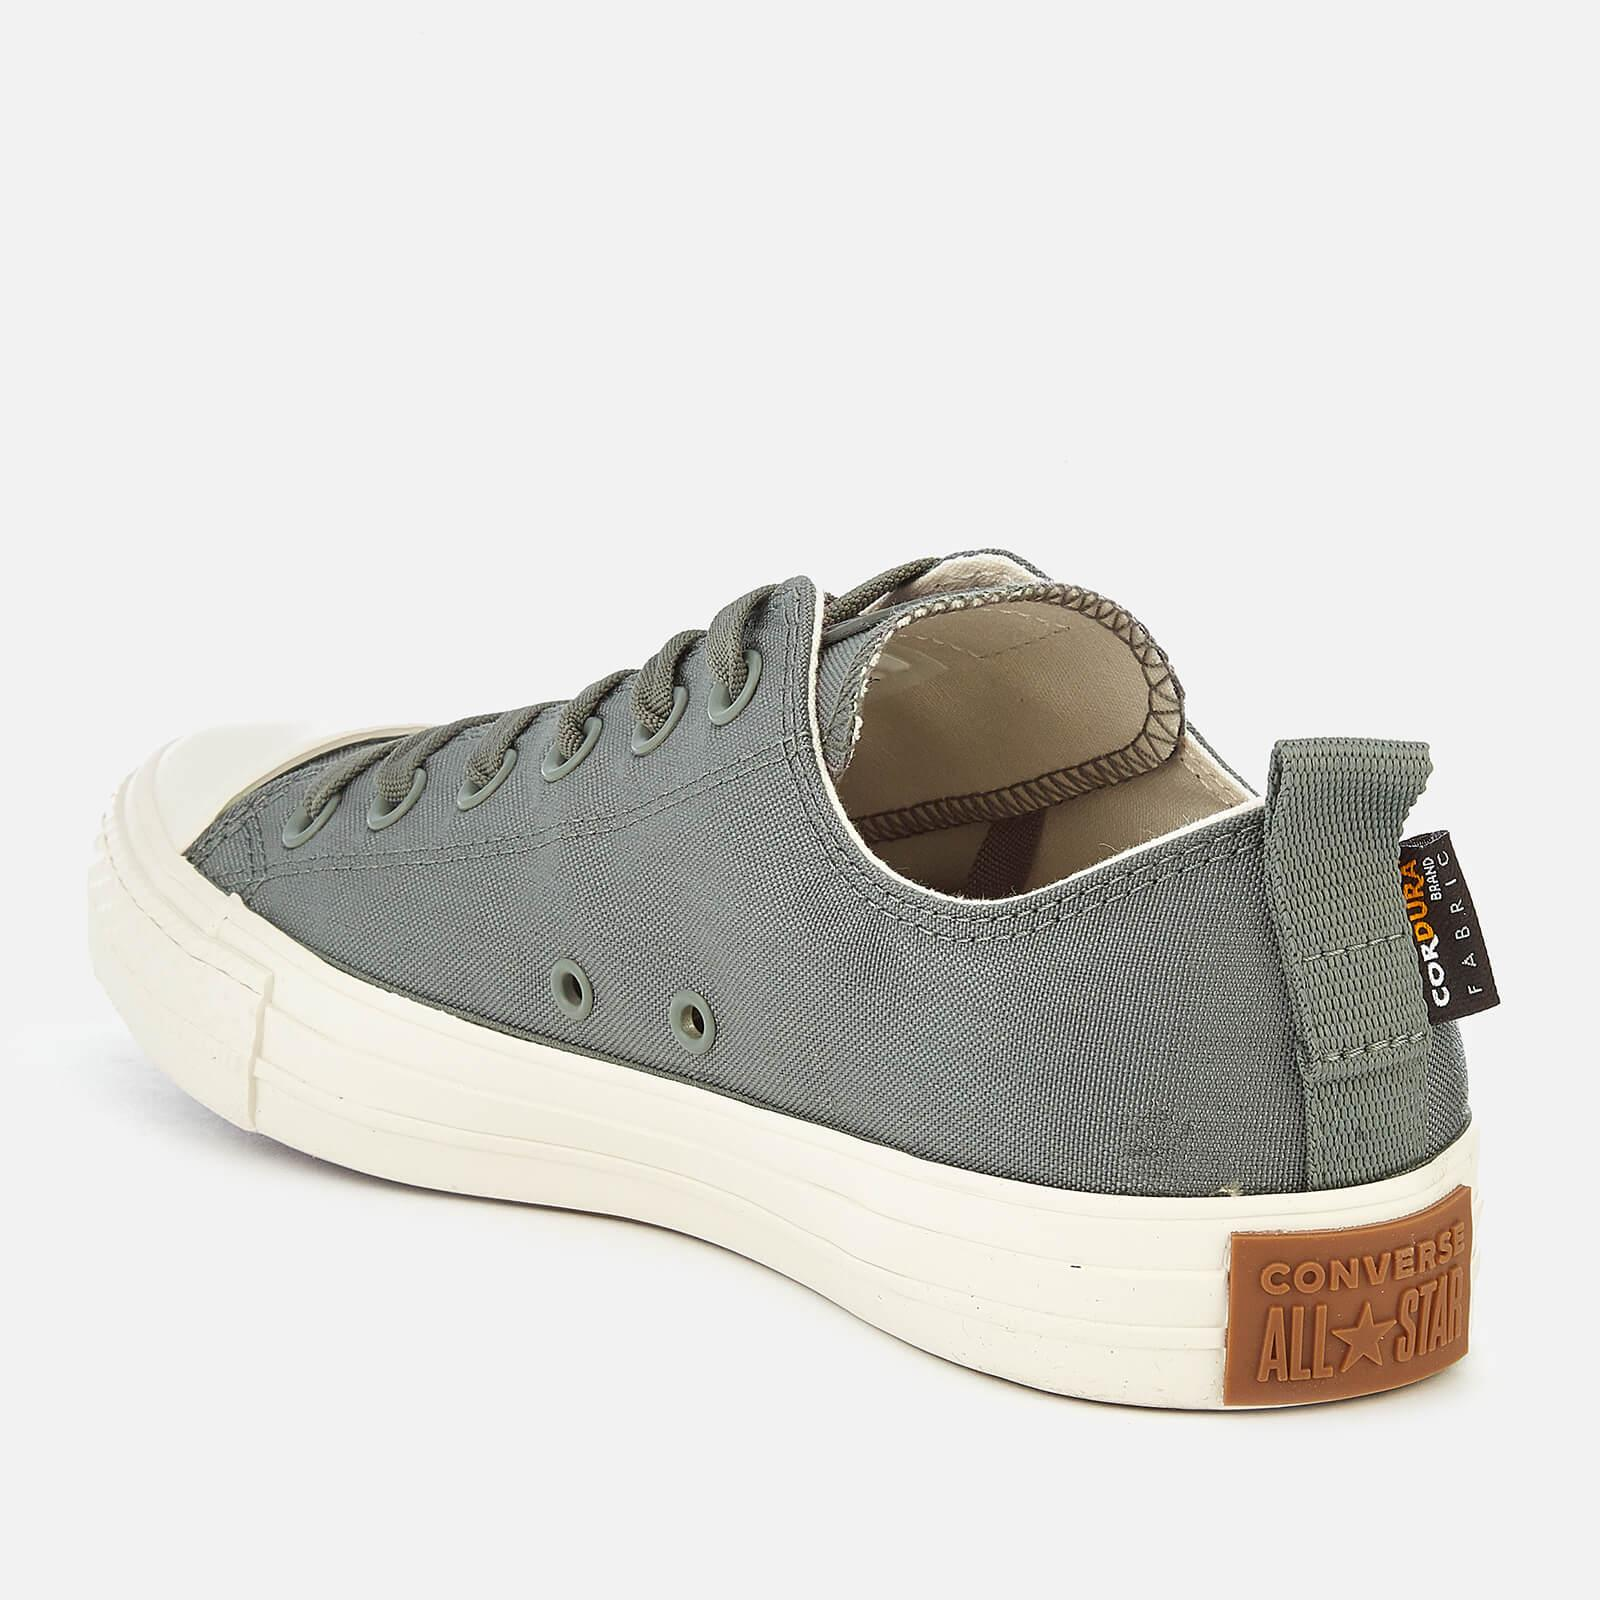 9c5240f9b54054 Converse Chuck Taylor All Star Cordura Ox Trainers in Gray for Men ...